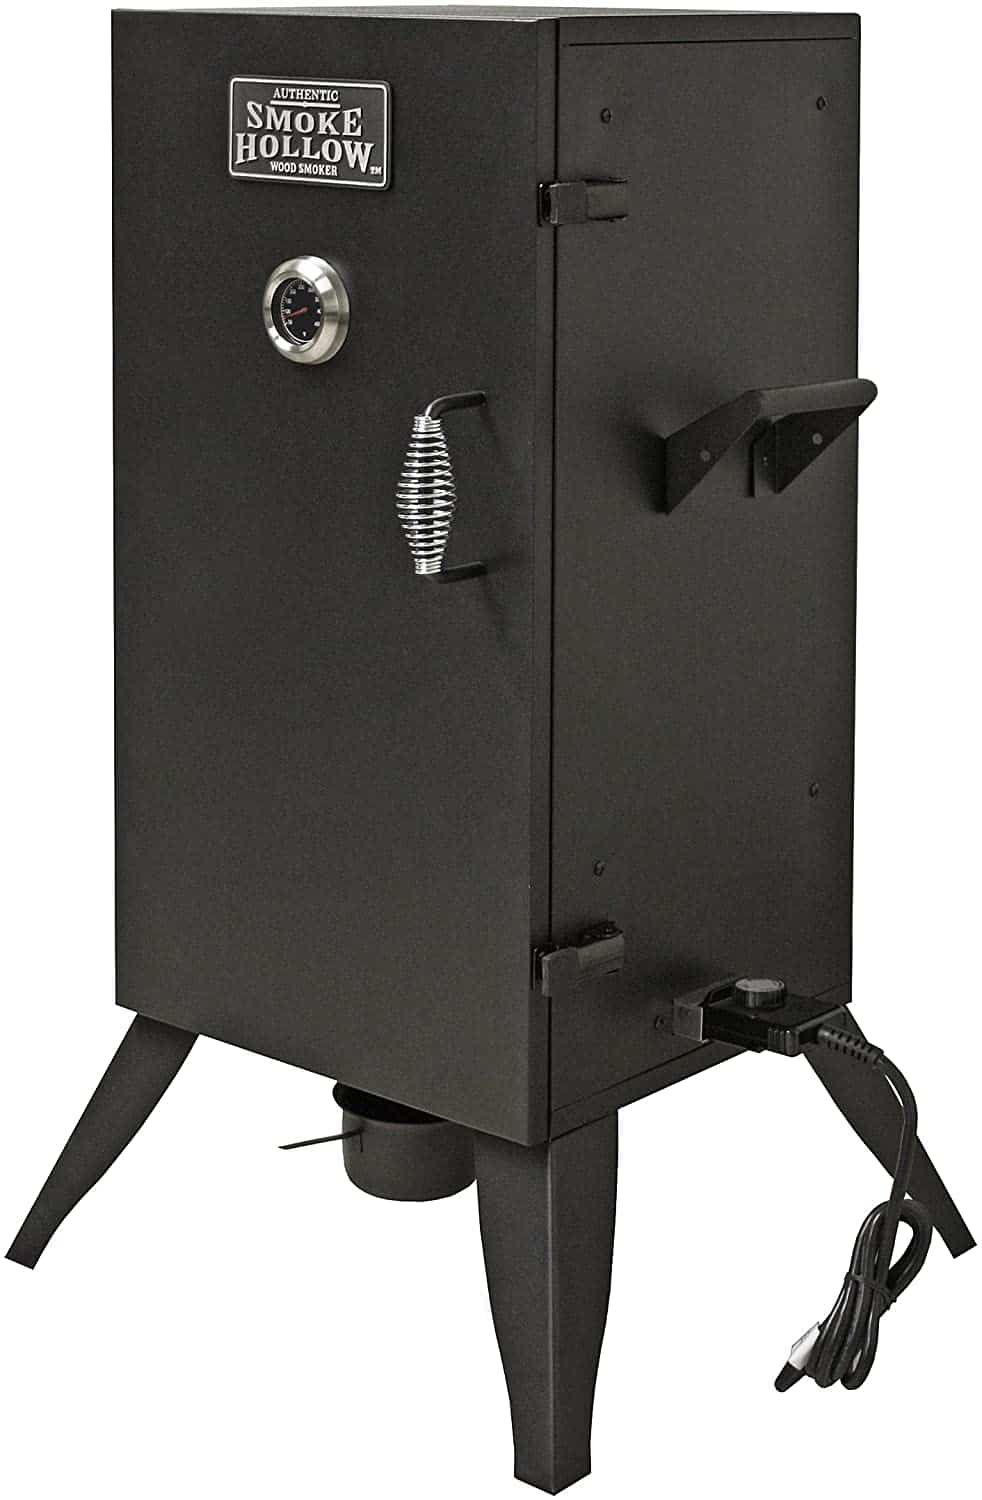 Most durable analog indoor electric smoker: Smoke Hollow 30 inch